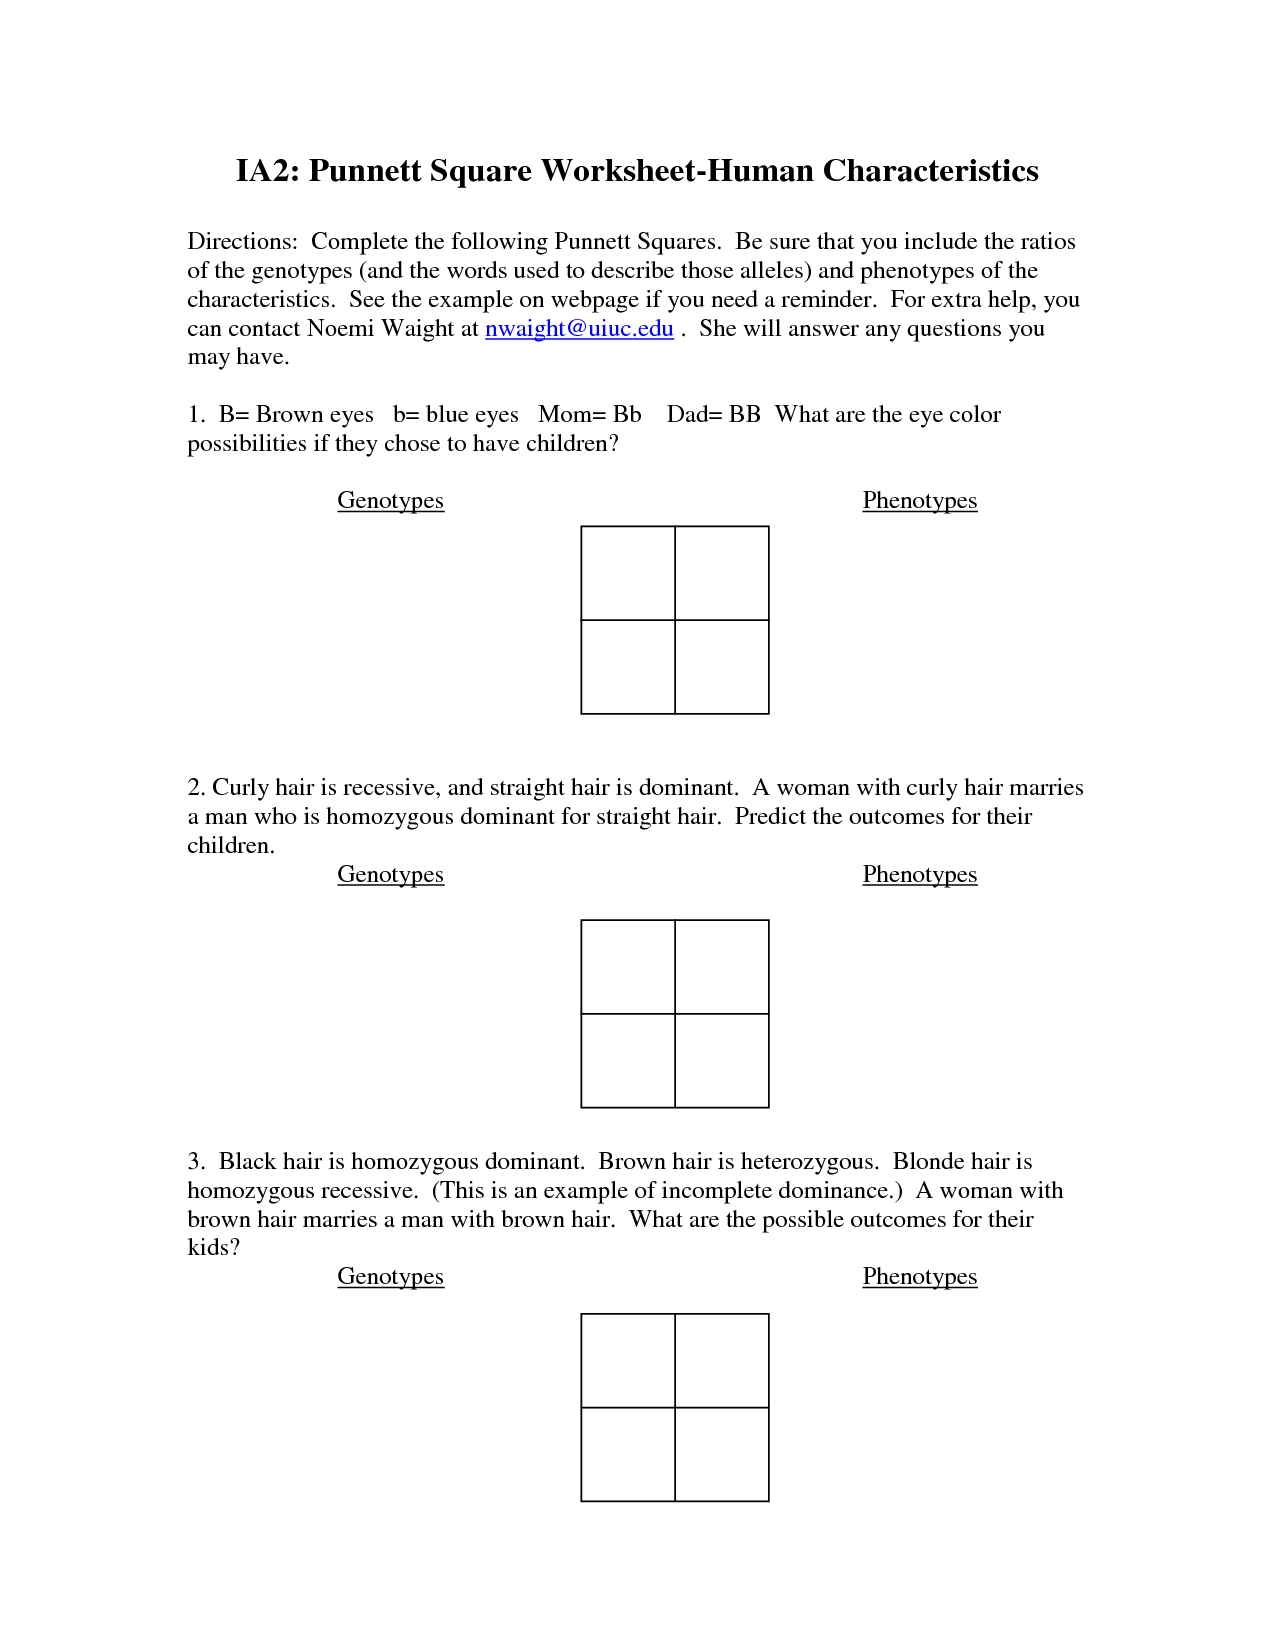 Punnett Square Worksheet Answers